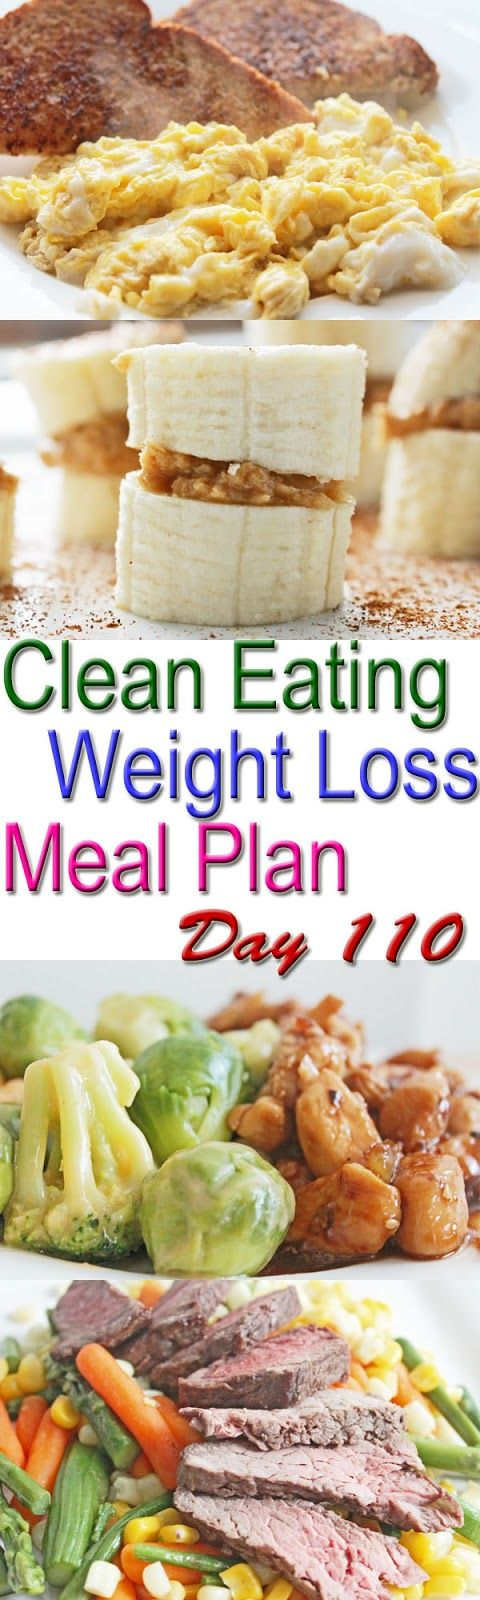 Clean+Eating+Meal+Plan+|+Easy+and+Cheap+Healthy+Meals+|+Weight+Loss+Meal+Plan+:+Clean+Eating+Weight+Loss+Meal+Plan+110